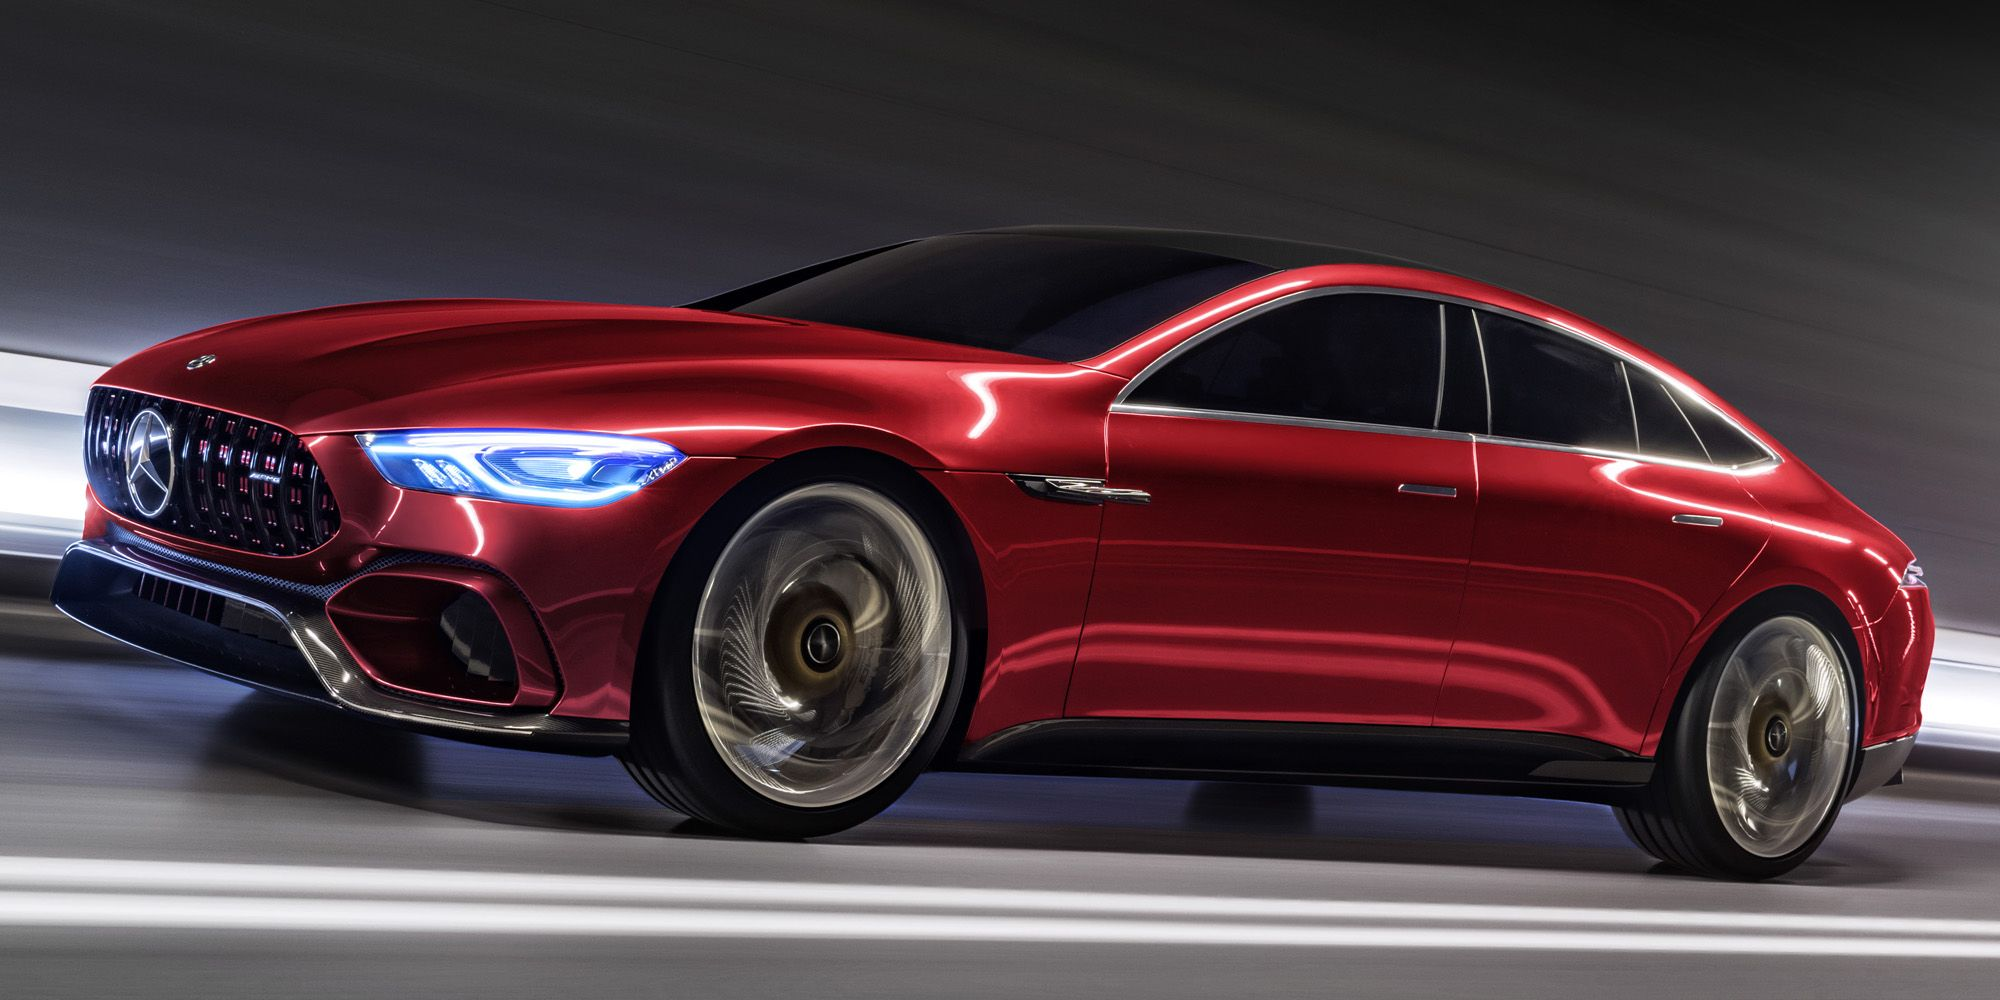 Mercedes Amg Gt Concept Highlights Dynamic Autonomous Future